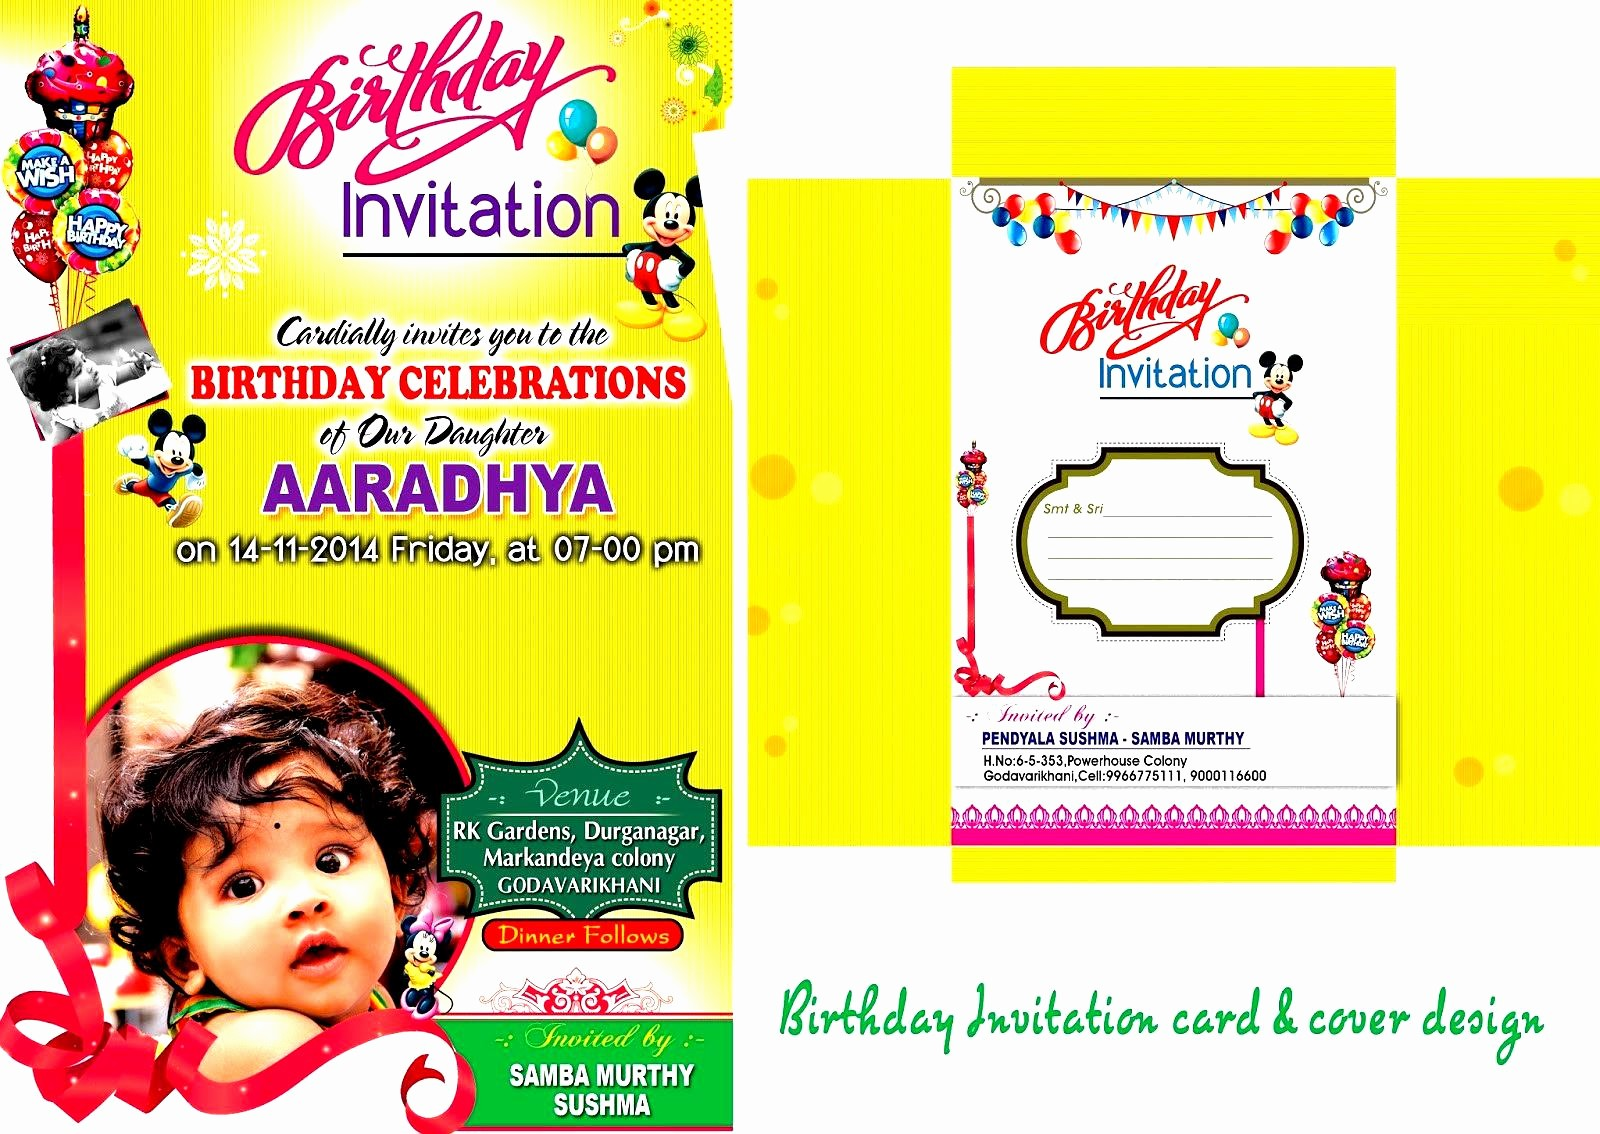 Birthday Party Invitation Card Template Luxury Birthday Invitation Card Template for Kids